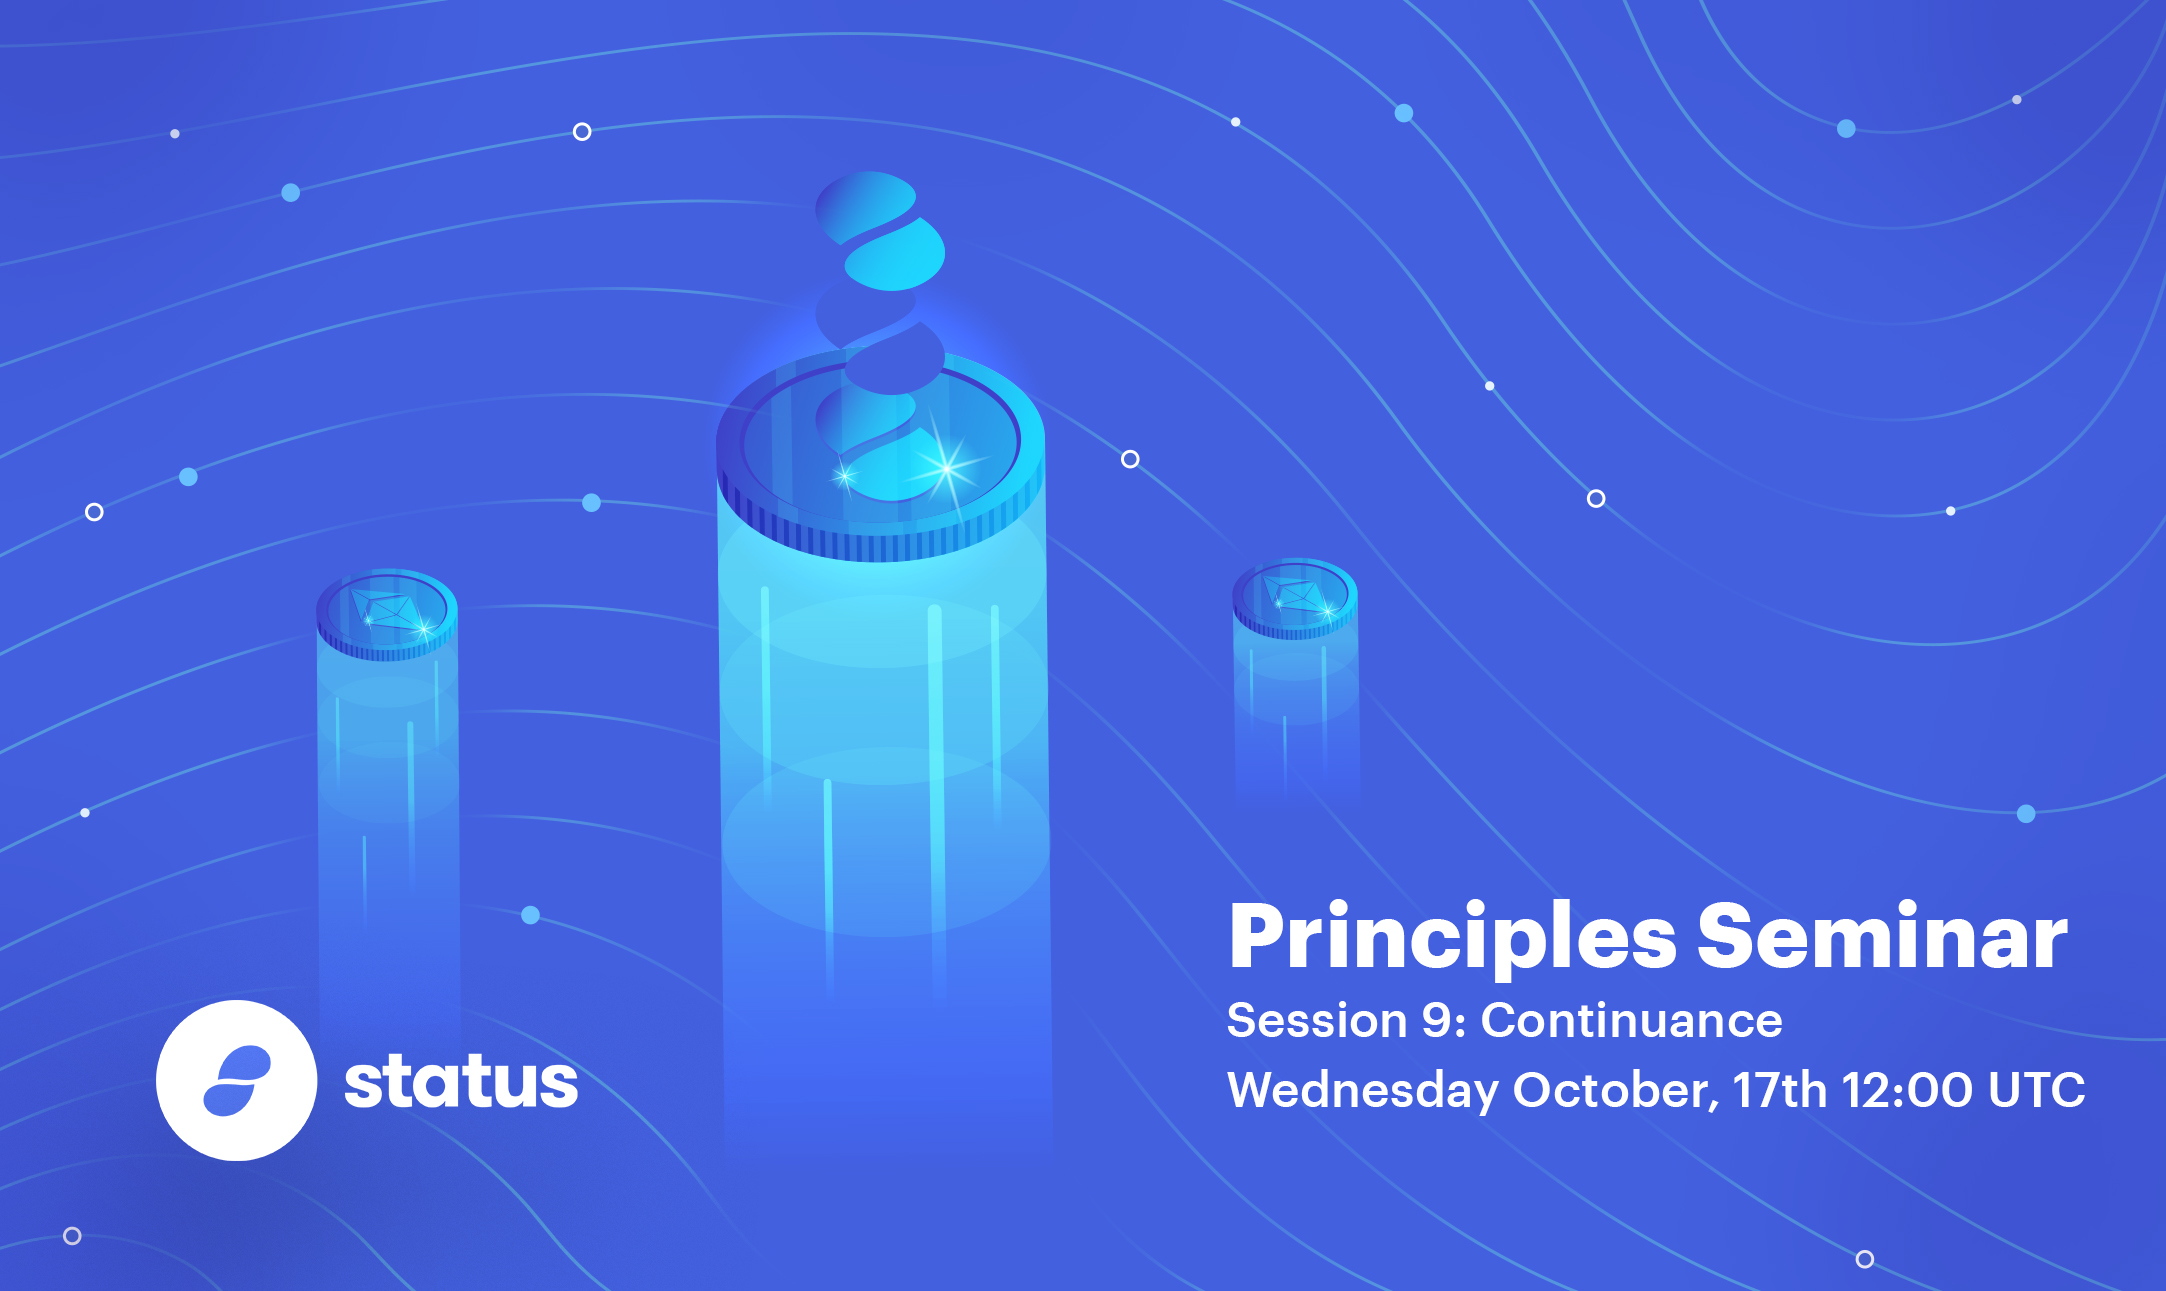 Principles Seminar - Session 9: Continuance